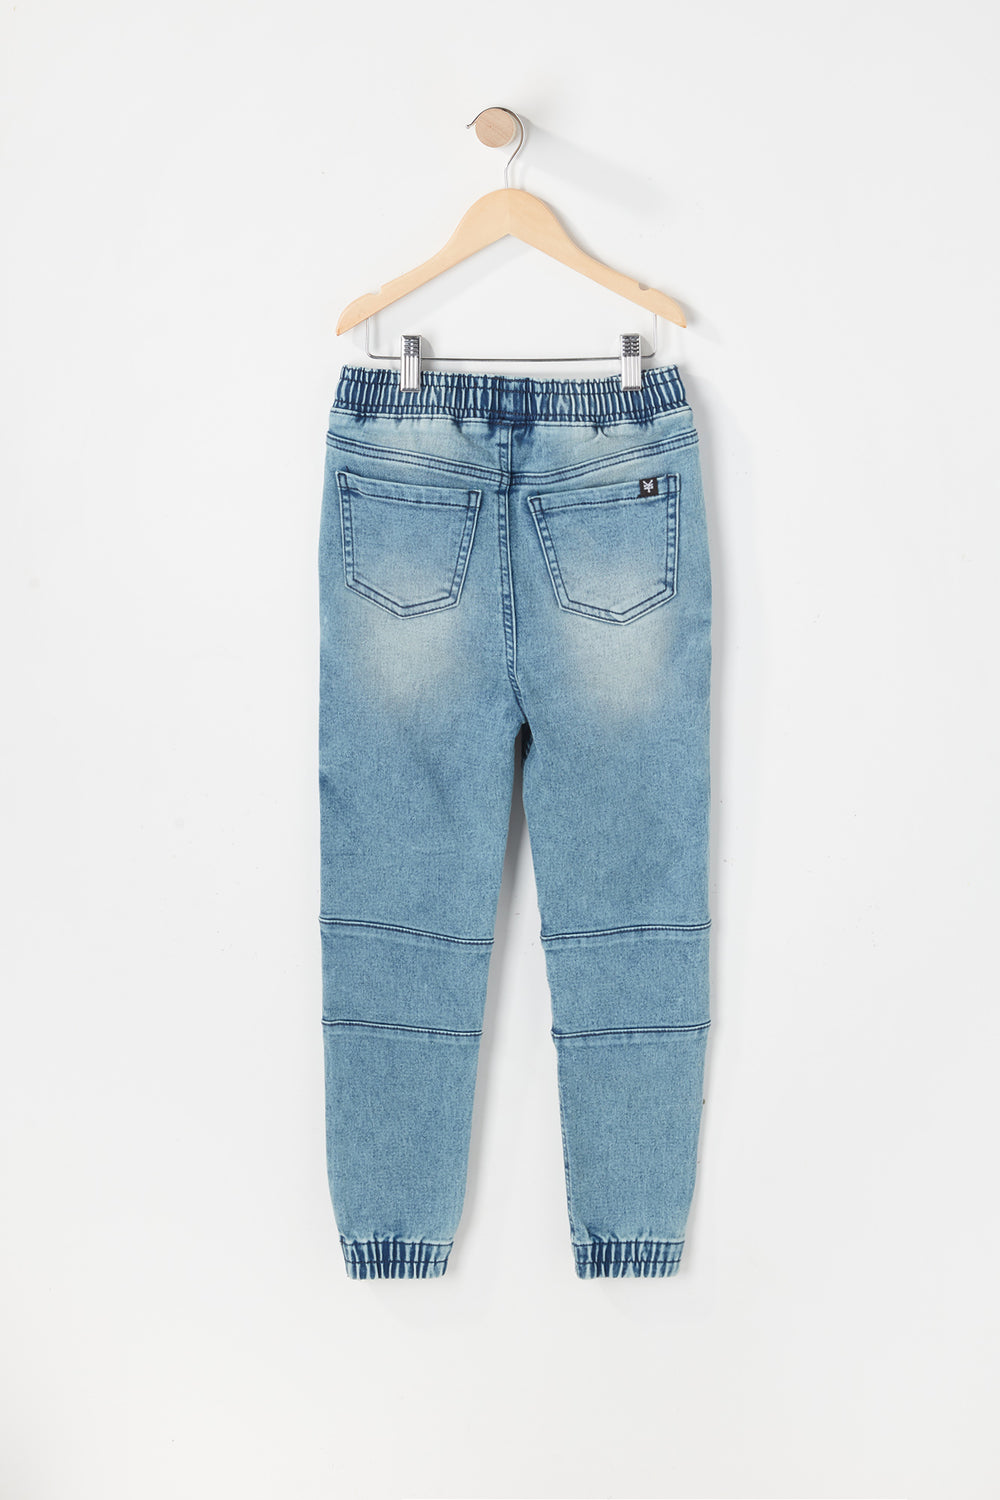 Jogger Jean Moto Zoo York Junior Bleu denim pale